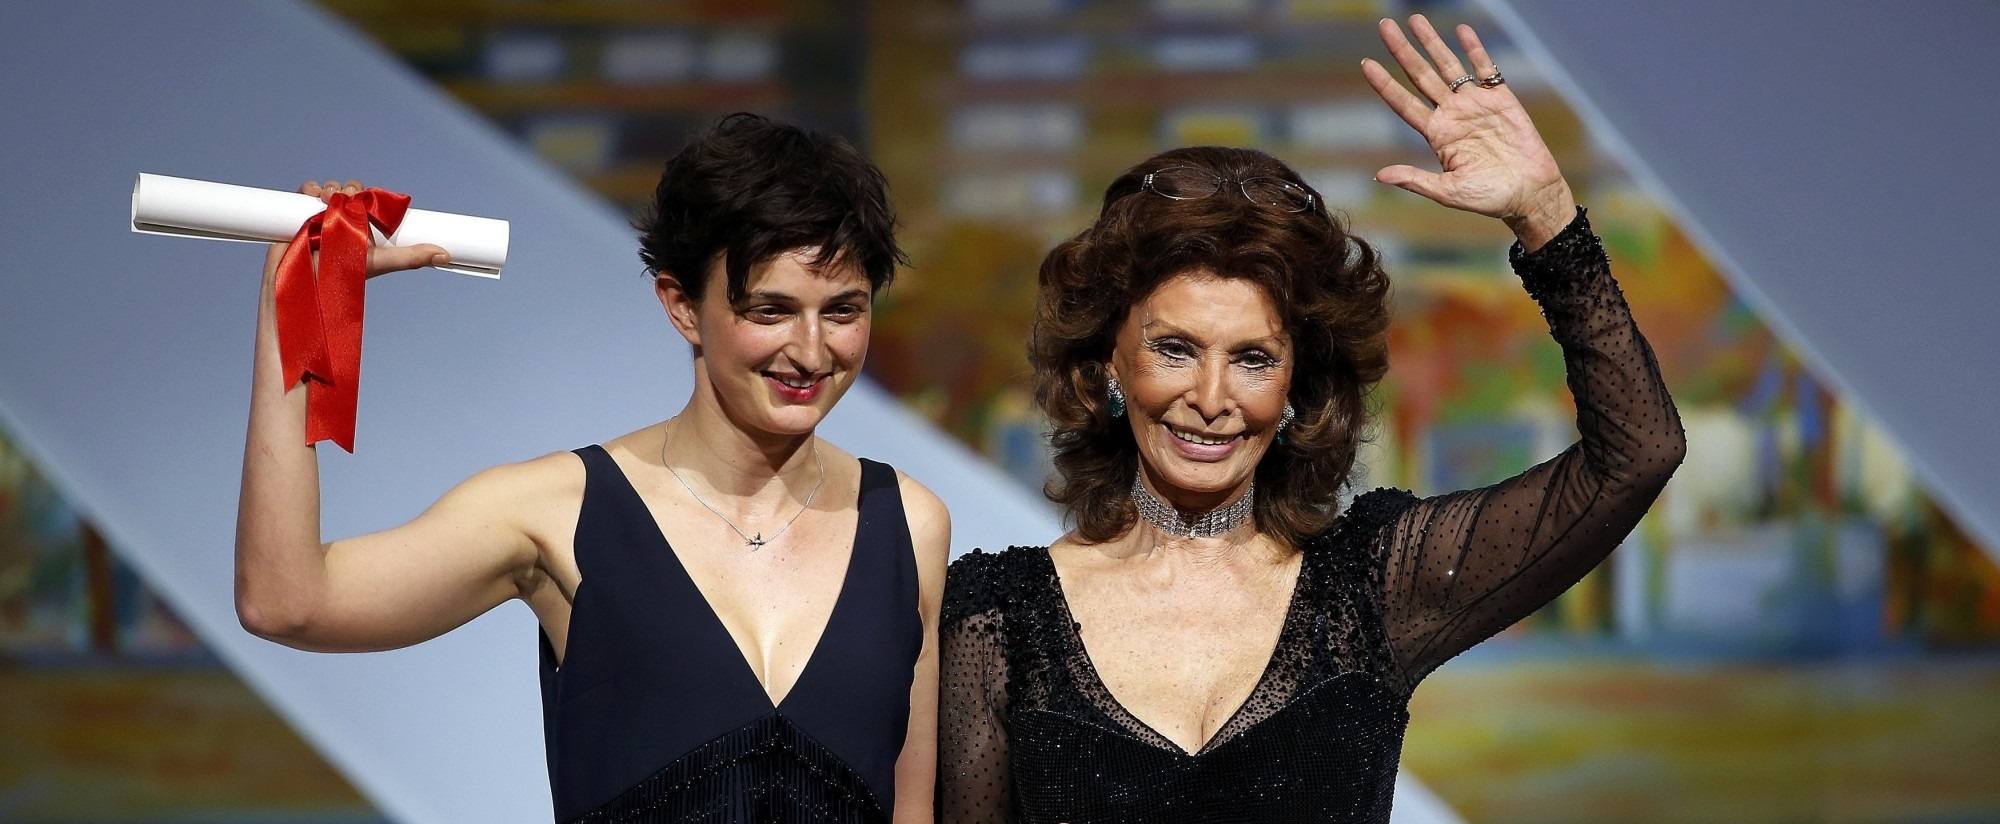 "Director Alice Rohrwacher, Grand Prix award winner for her film ""Le meraviglie"", poses on stage with actress Sophia Loren during the closing ceremony of the 67th Cannes Film Festival in Cannes"